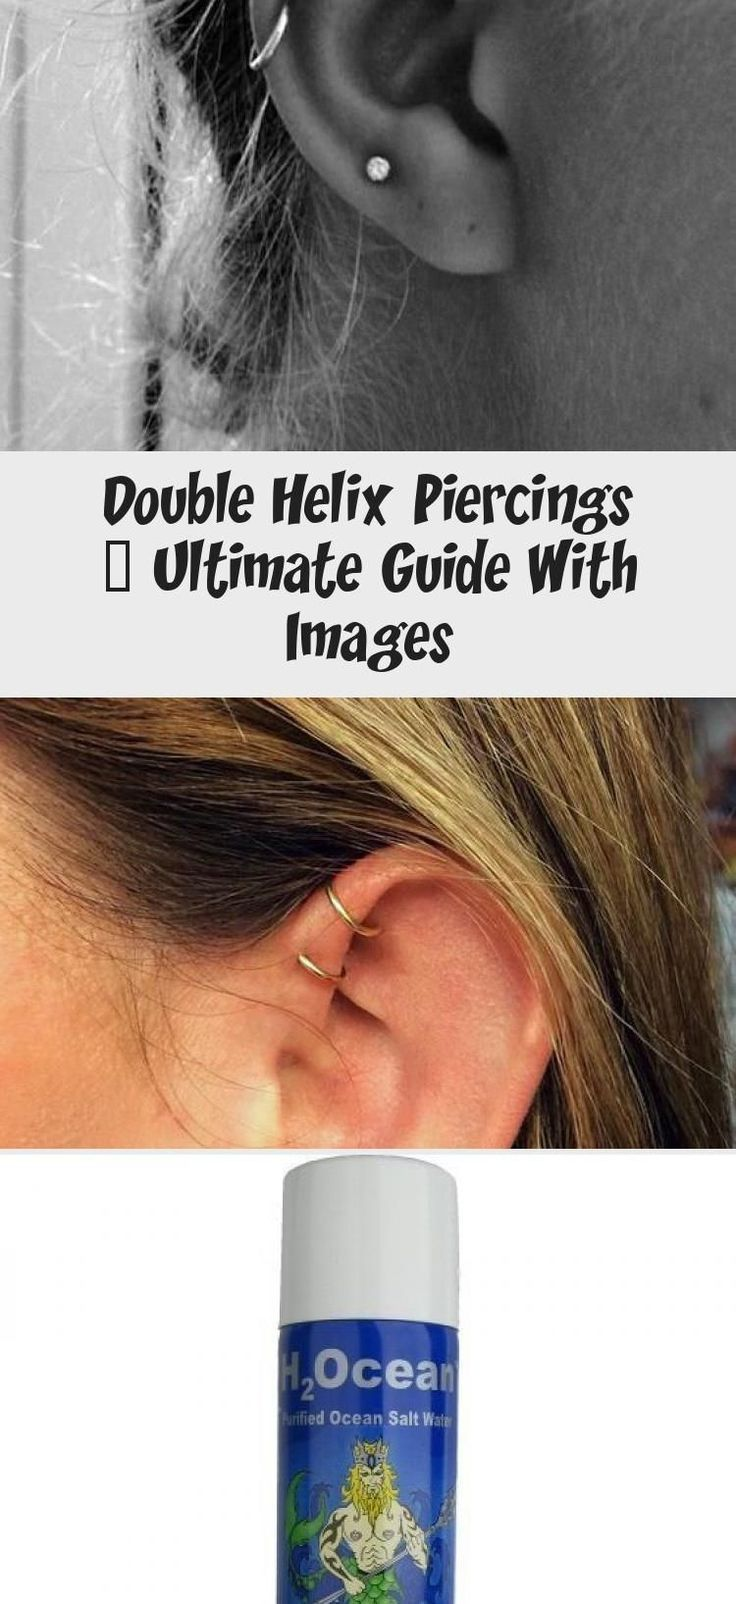 Double Helix Diy Ear Piercings